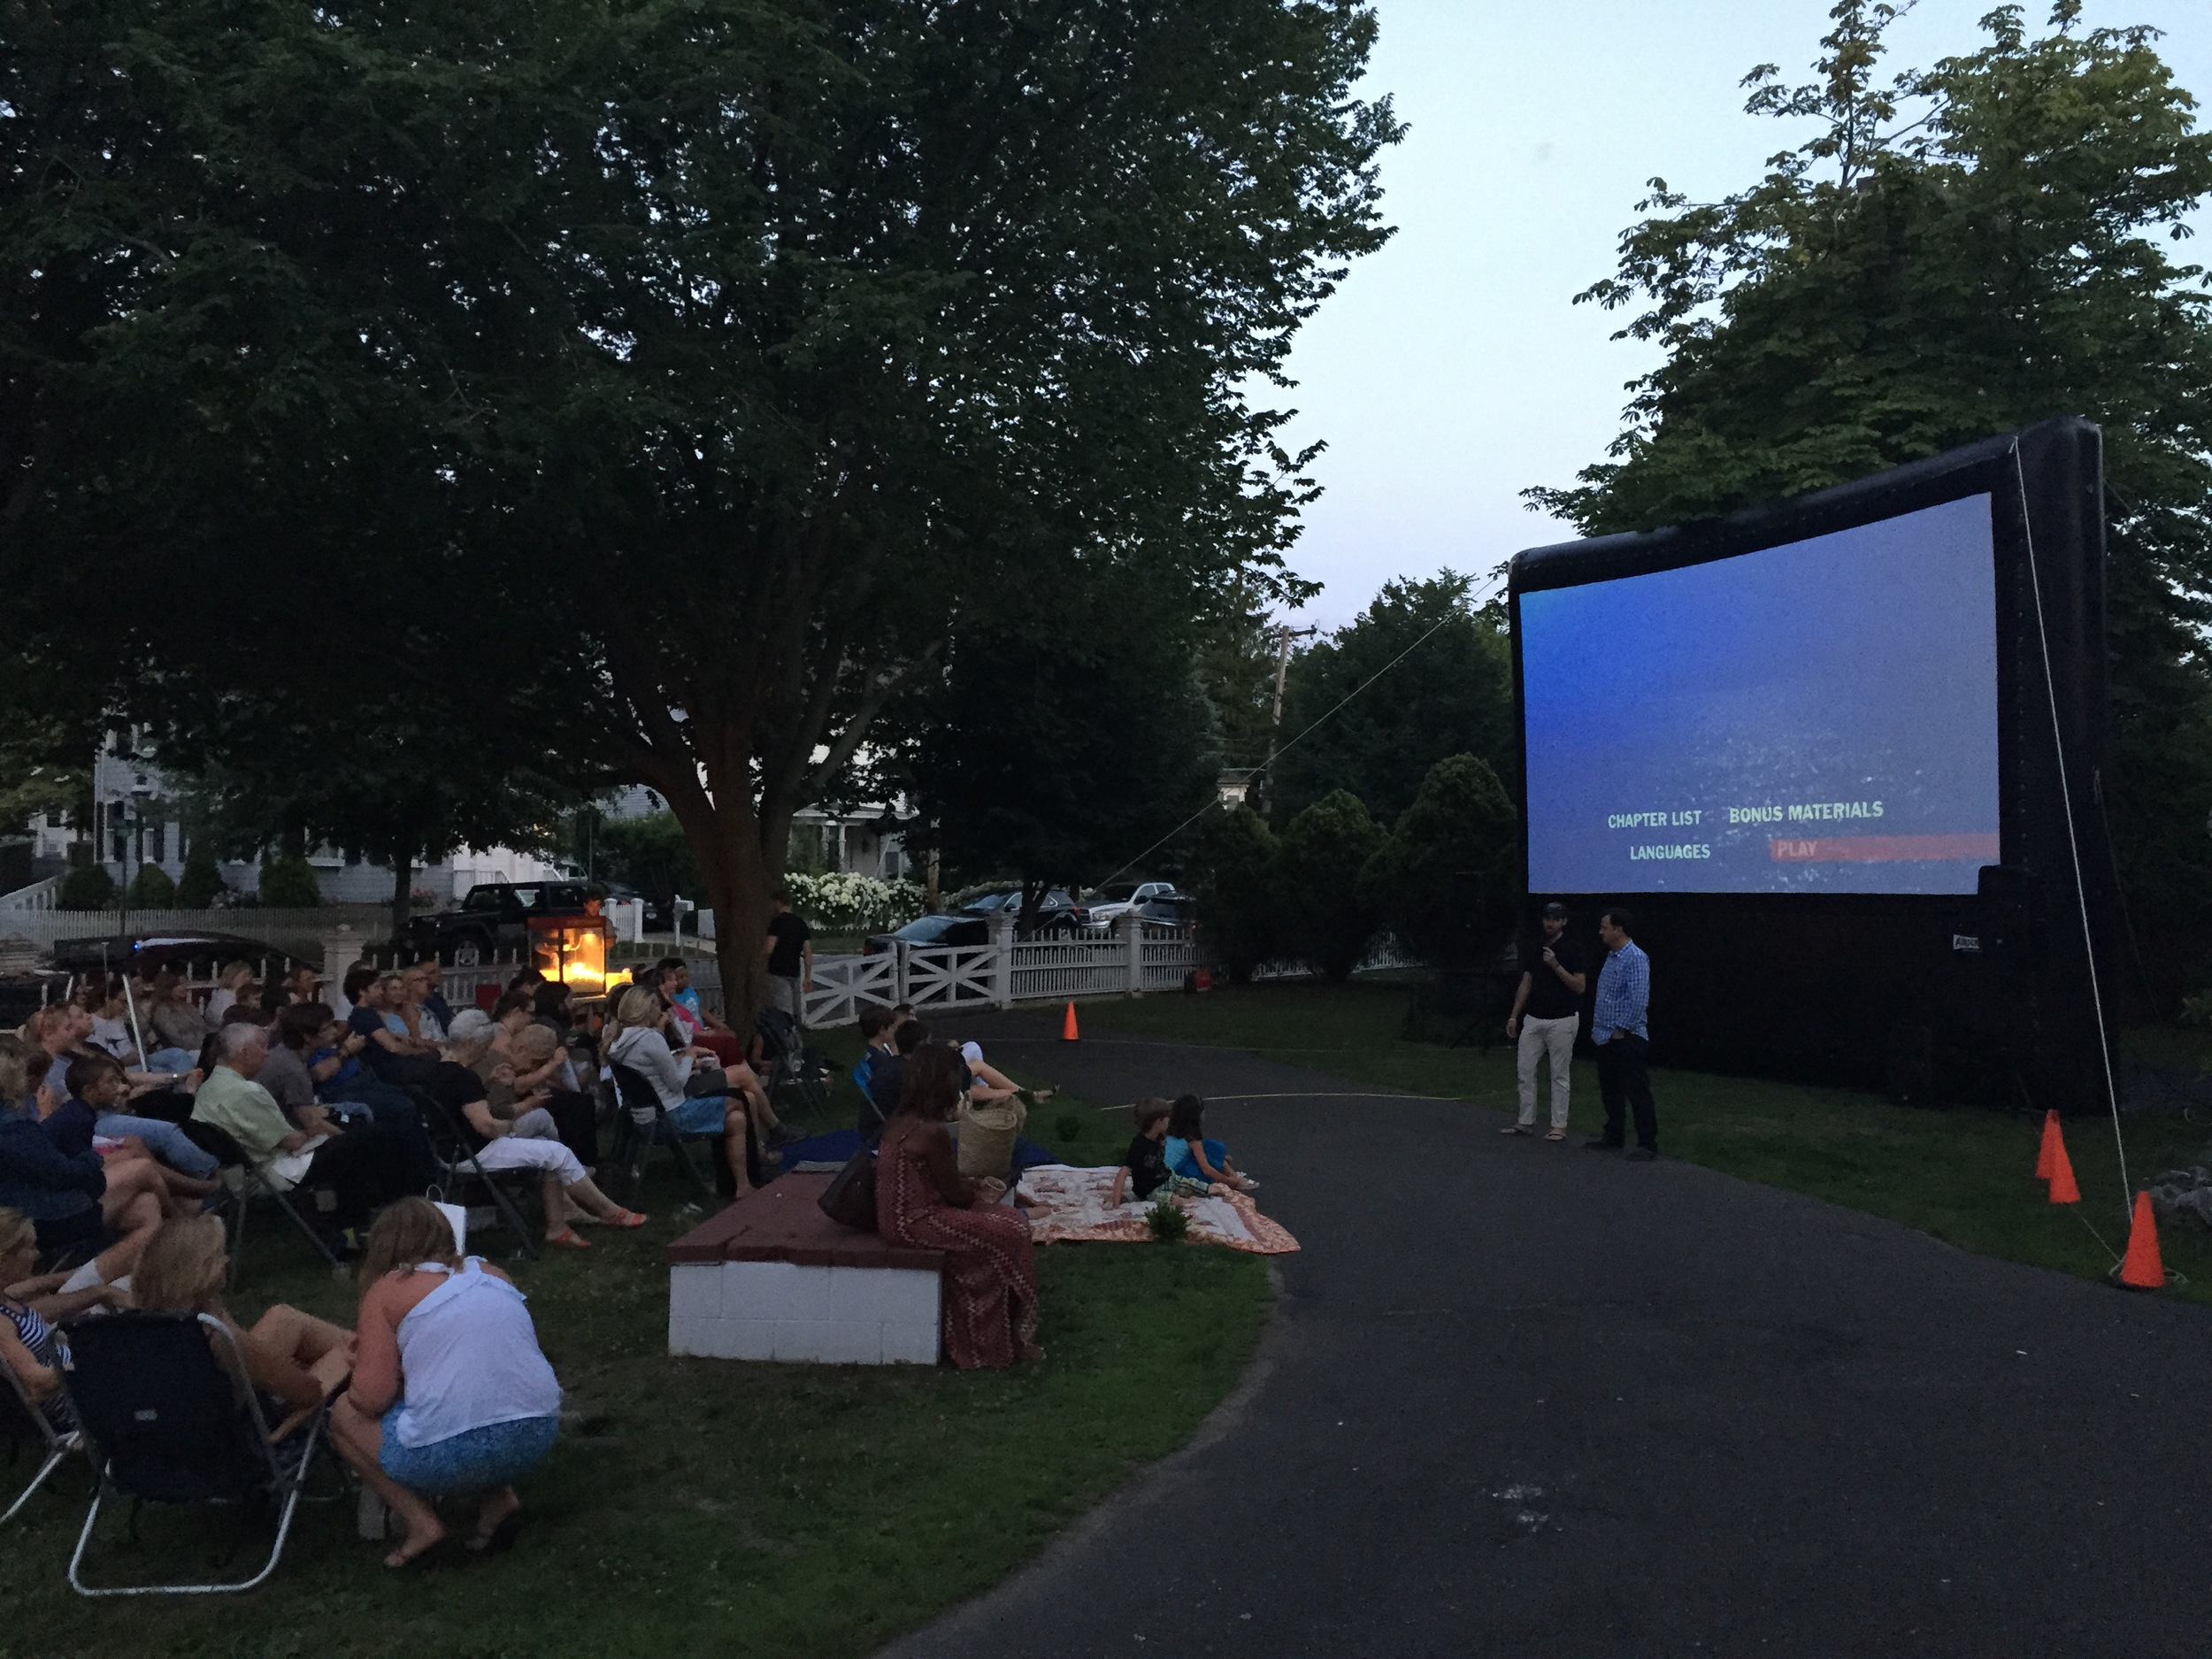 Co-curators, Stephen T. Lobosco and Peter Drakoulias, speak at the 40th Anniversary Screening of JAWS on the front lawn!